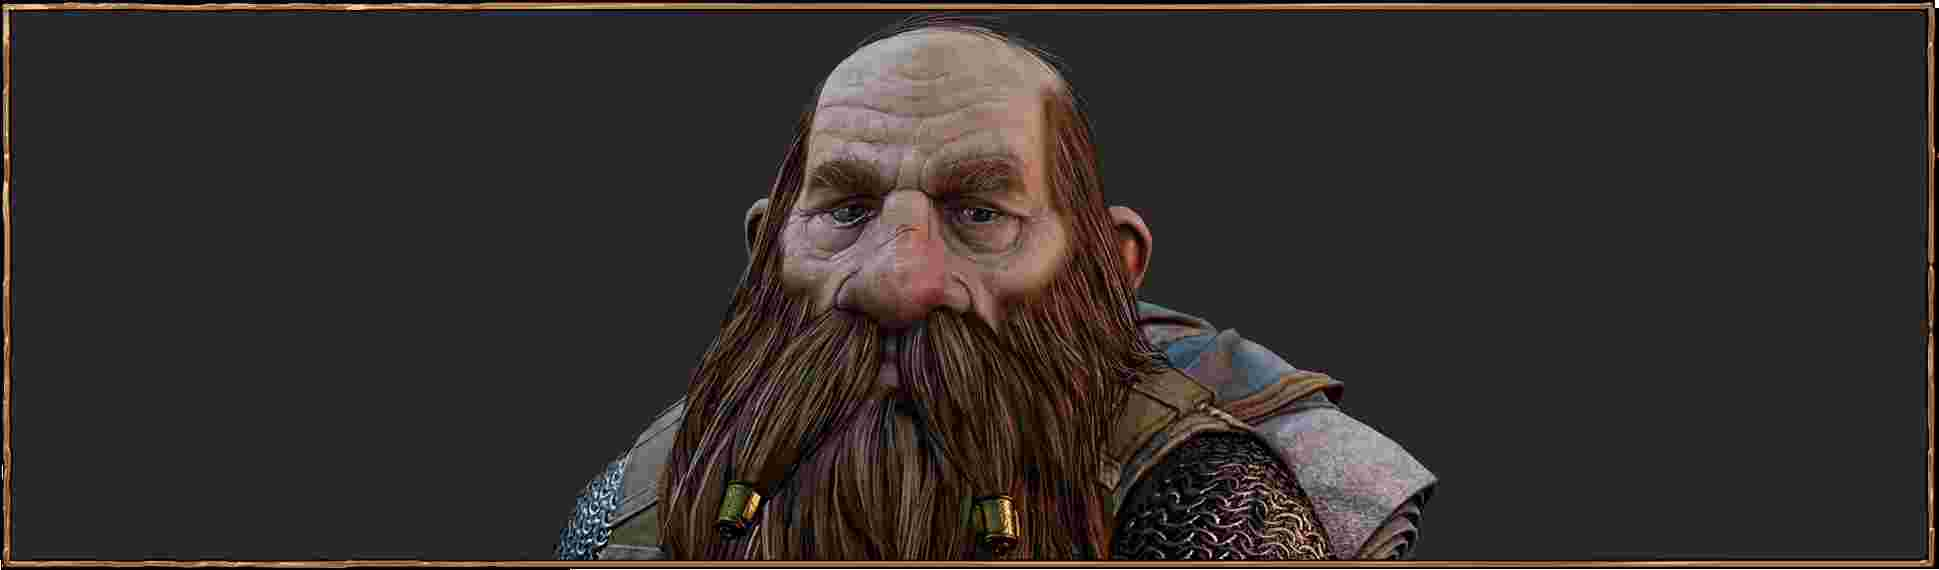 Dwarf_Ranger_Render_Close-up